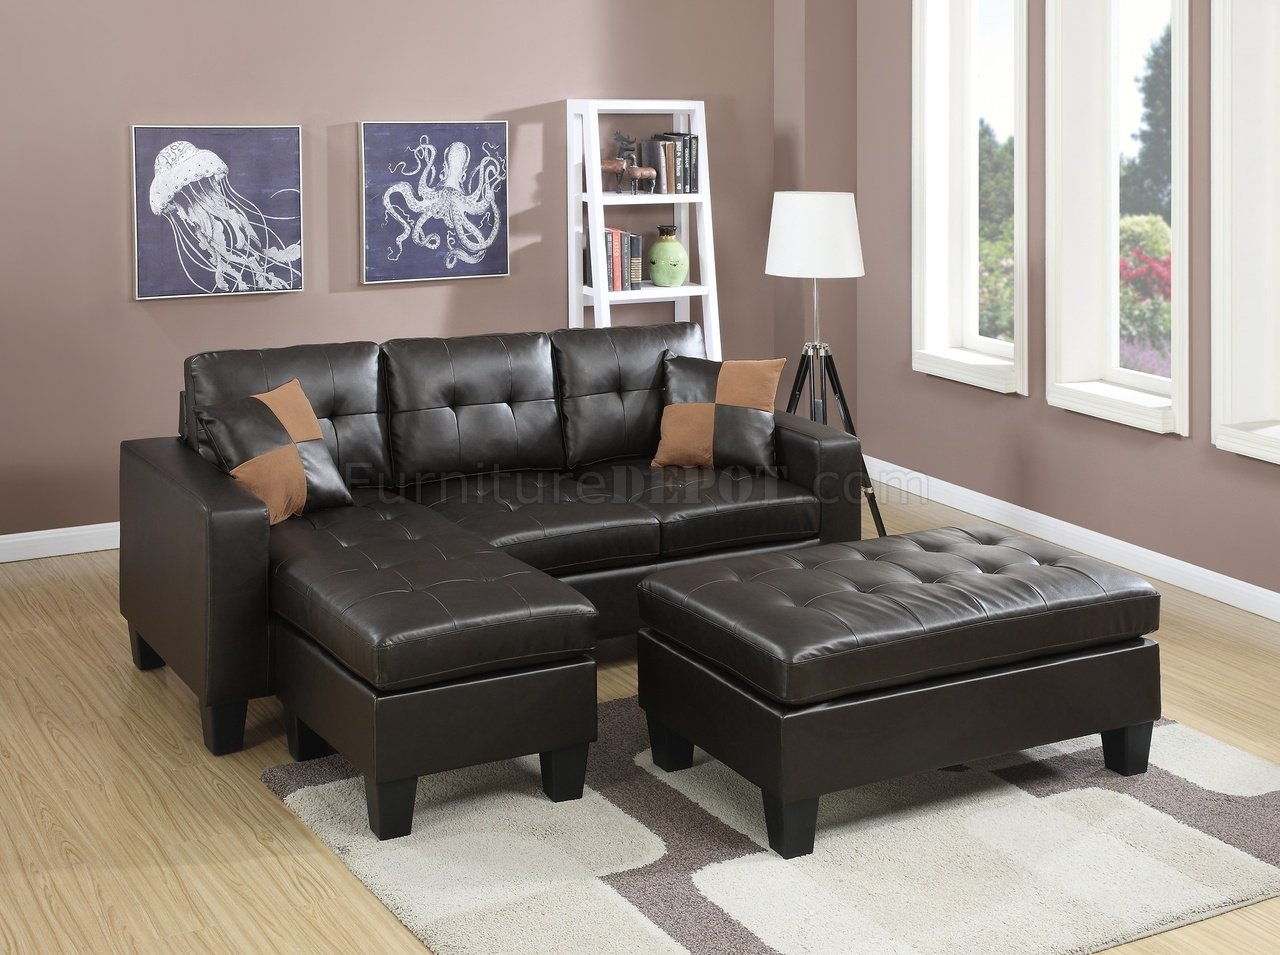 espresso bonded leather reclining sofa loveseat set inflatable aldi f6927 sectional in by boss